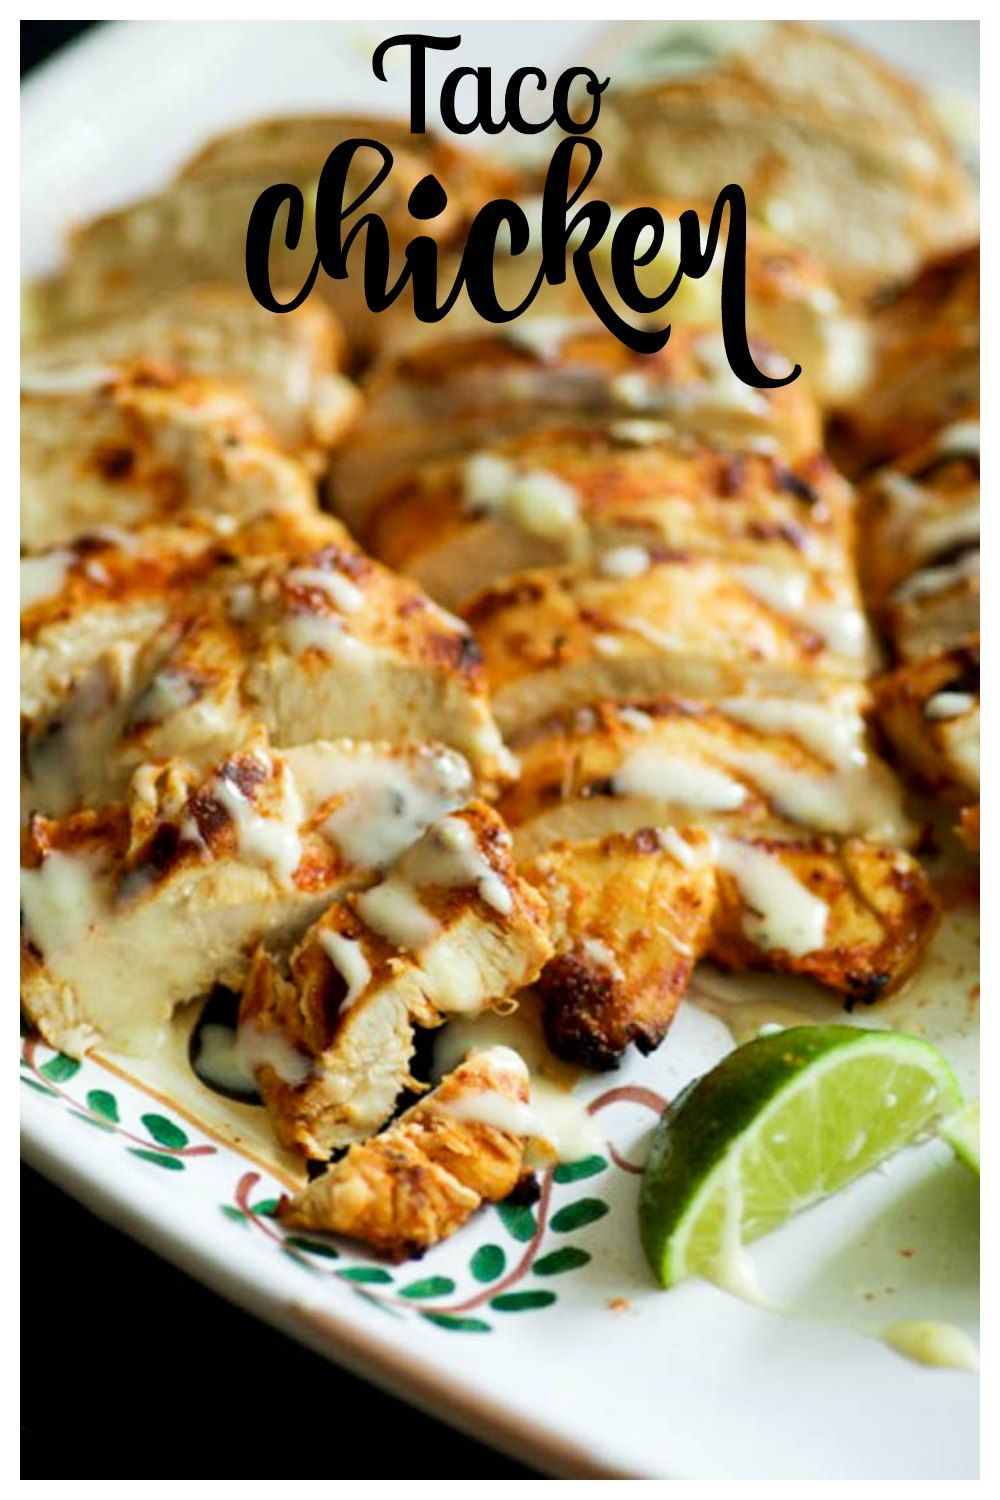 Taco Chicken, chicken marinated in taco seasoning images